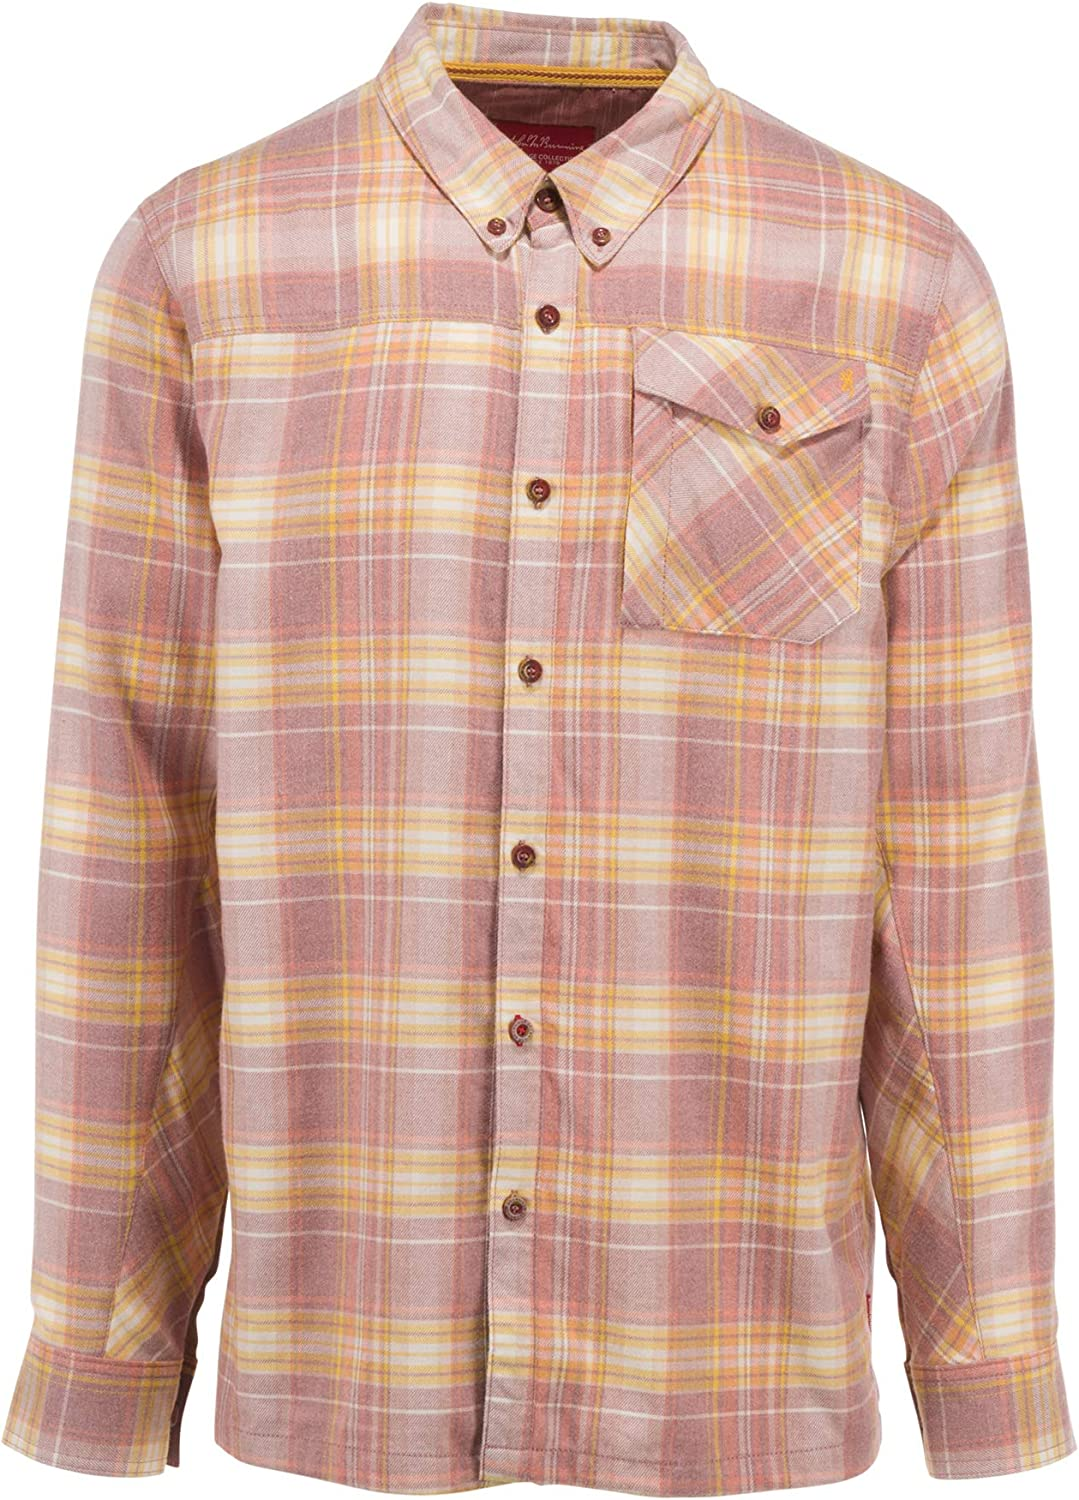 Browning Men's Shirt Limited Special Price Super sale period limited Roscoe